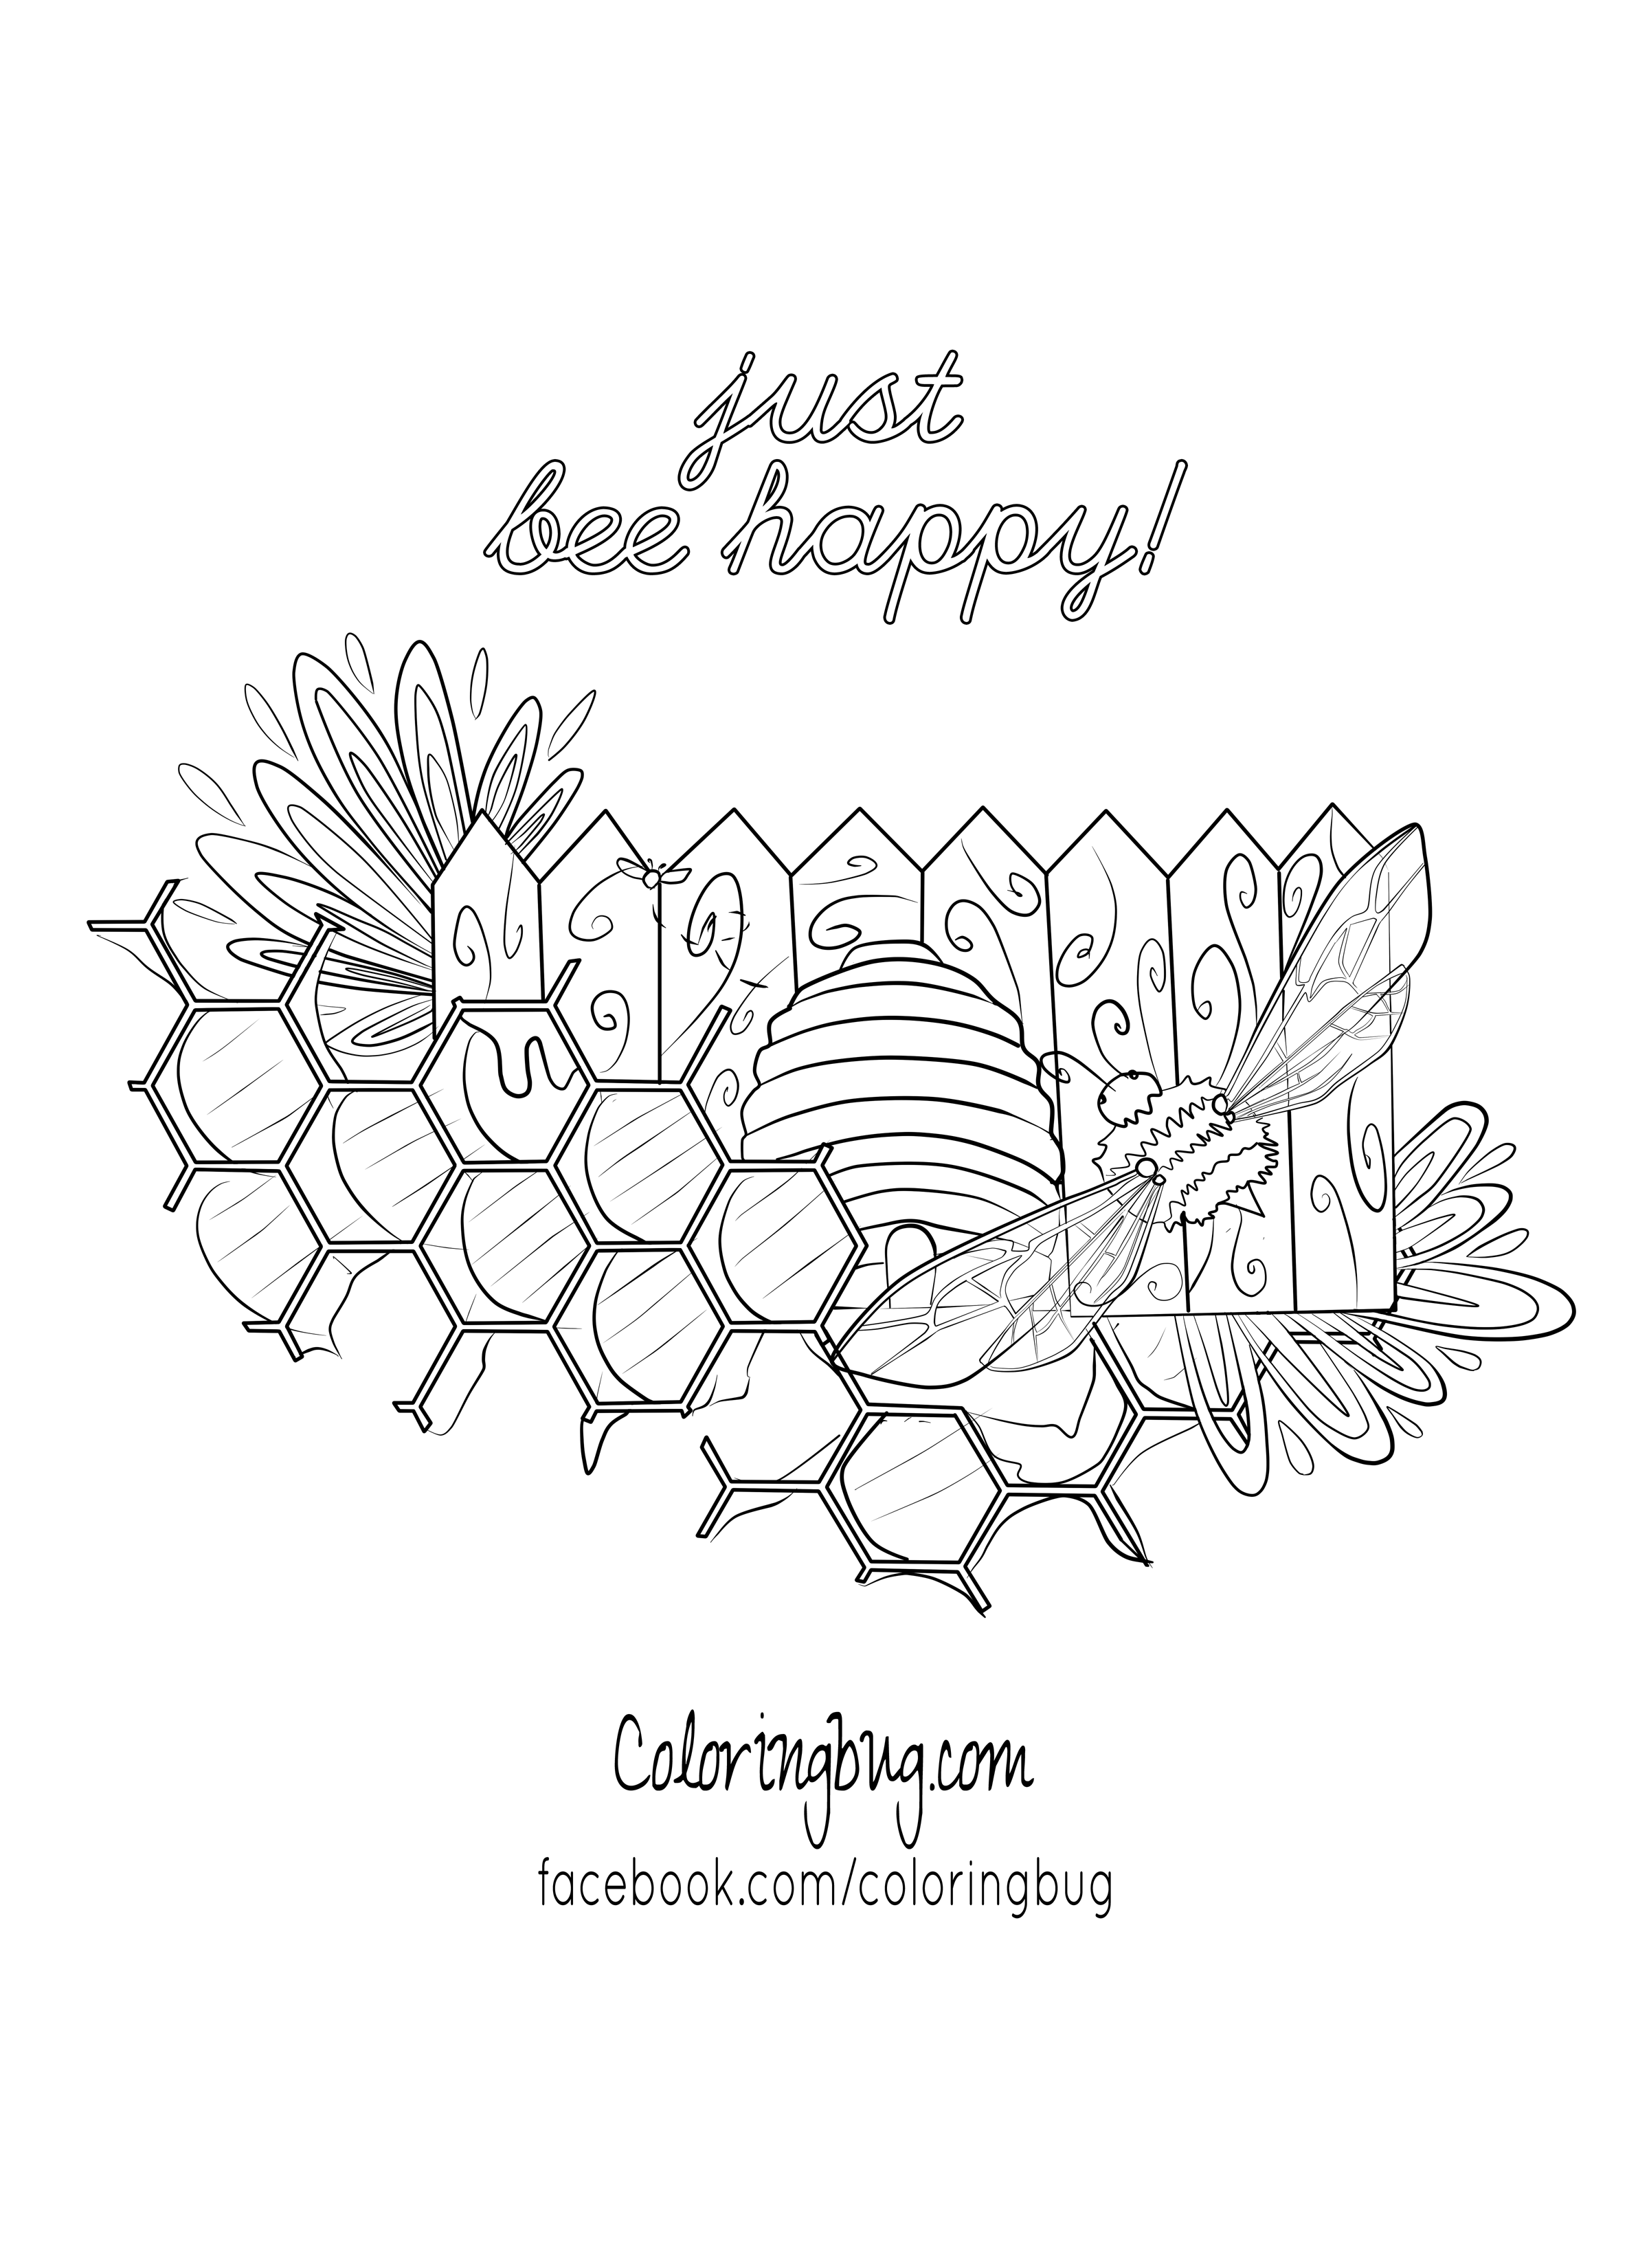 bumblebee coloring page bzzzzz campton a pinterest